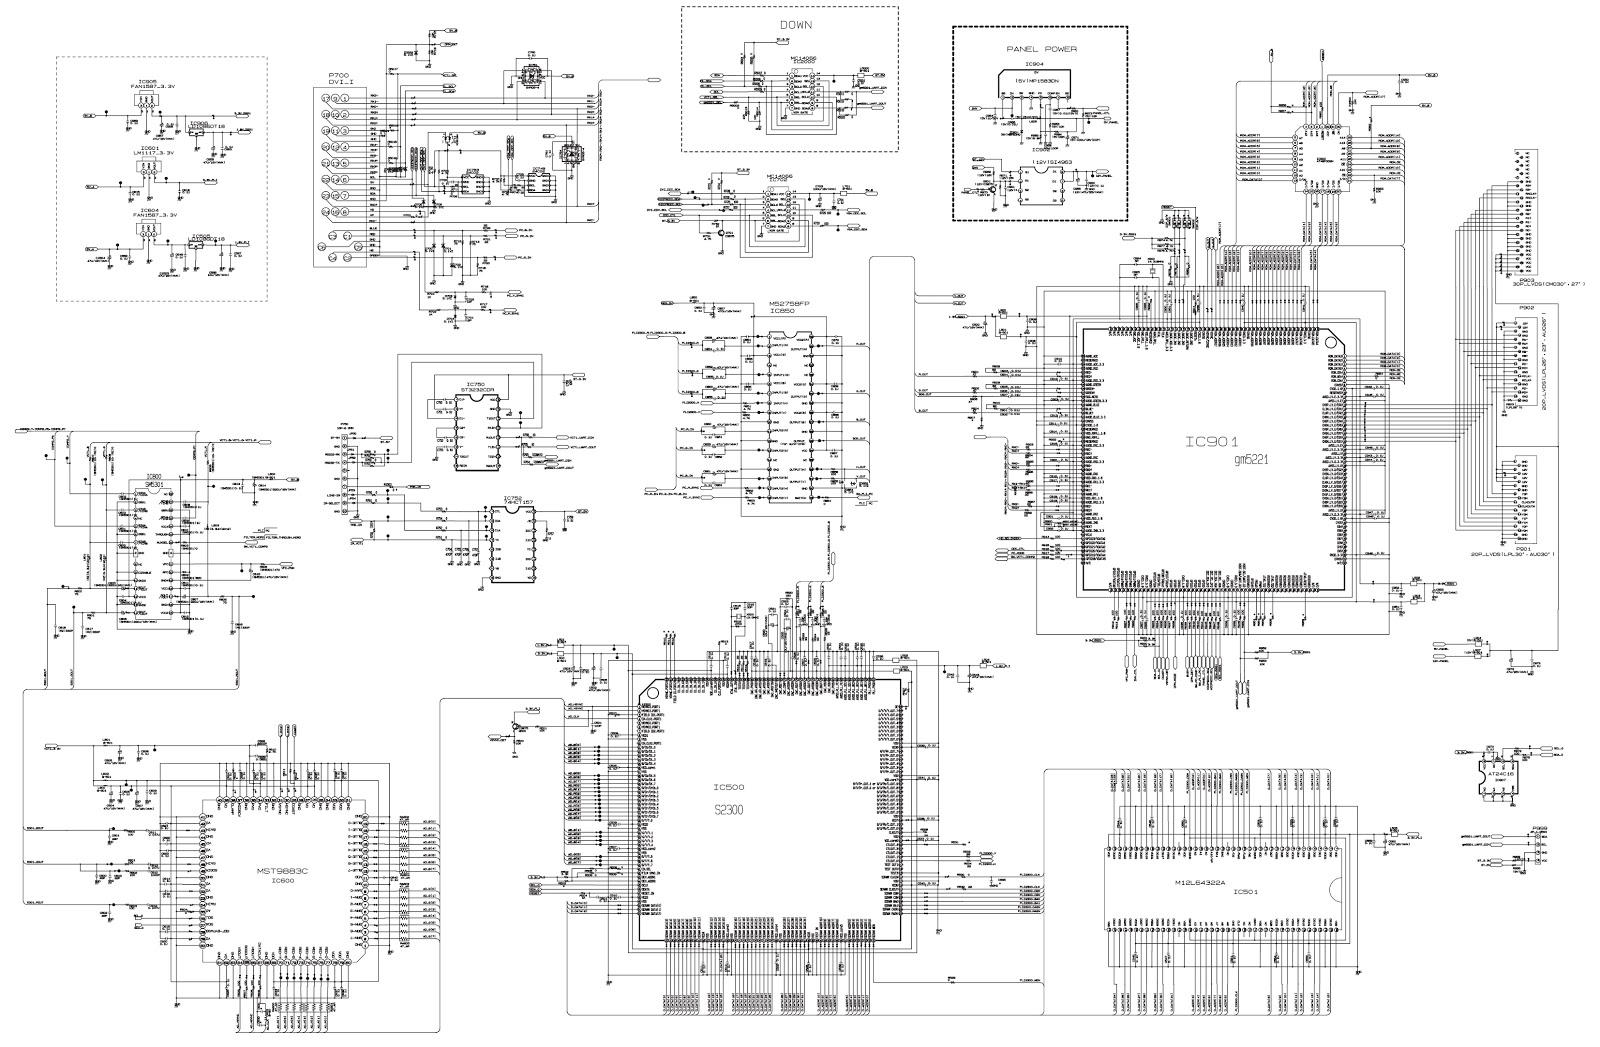 Rz26lz55 lg lcd tv circuit diagram schematic diagrams video control and display data video signal is received from tuner av portav1av2s videocomponent and goes to the one chip video decoder vcti which pooptronica Images